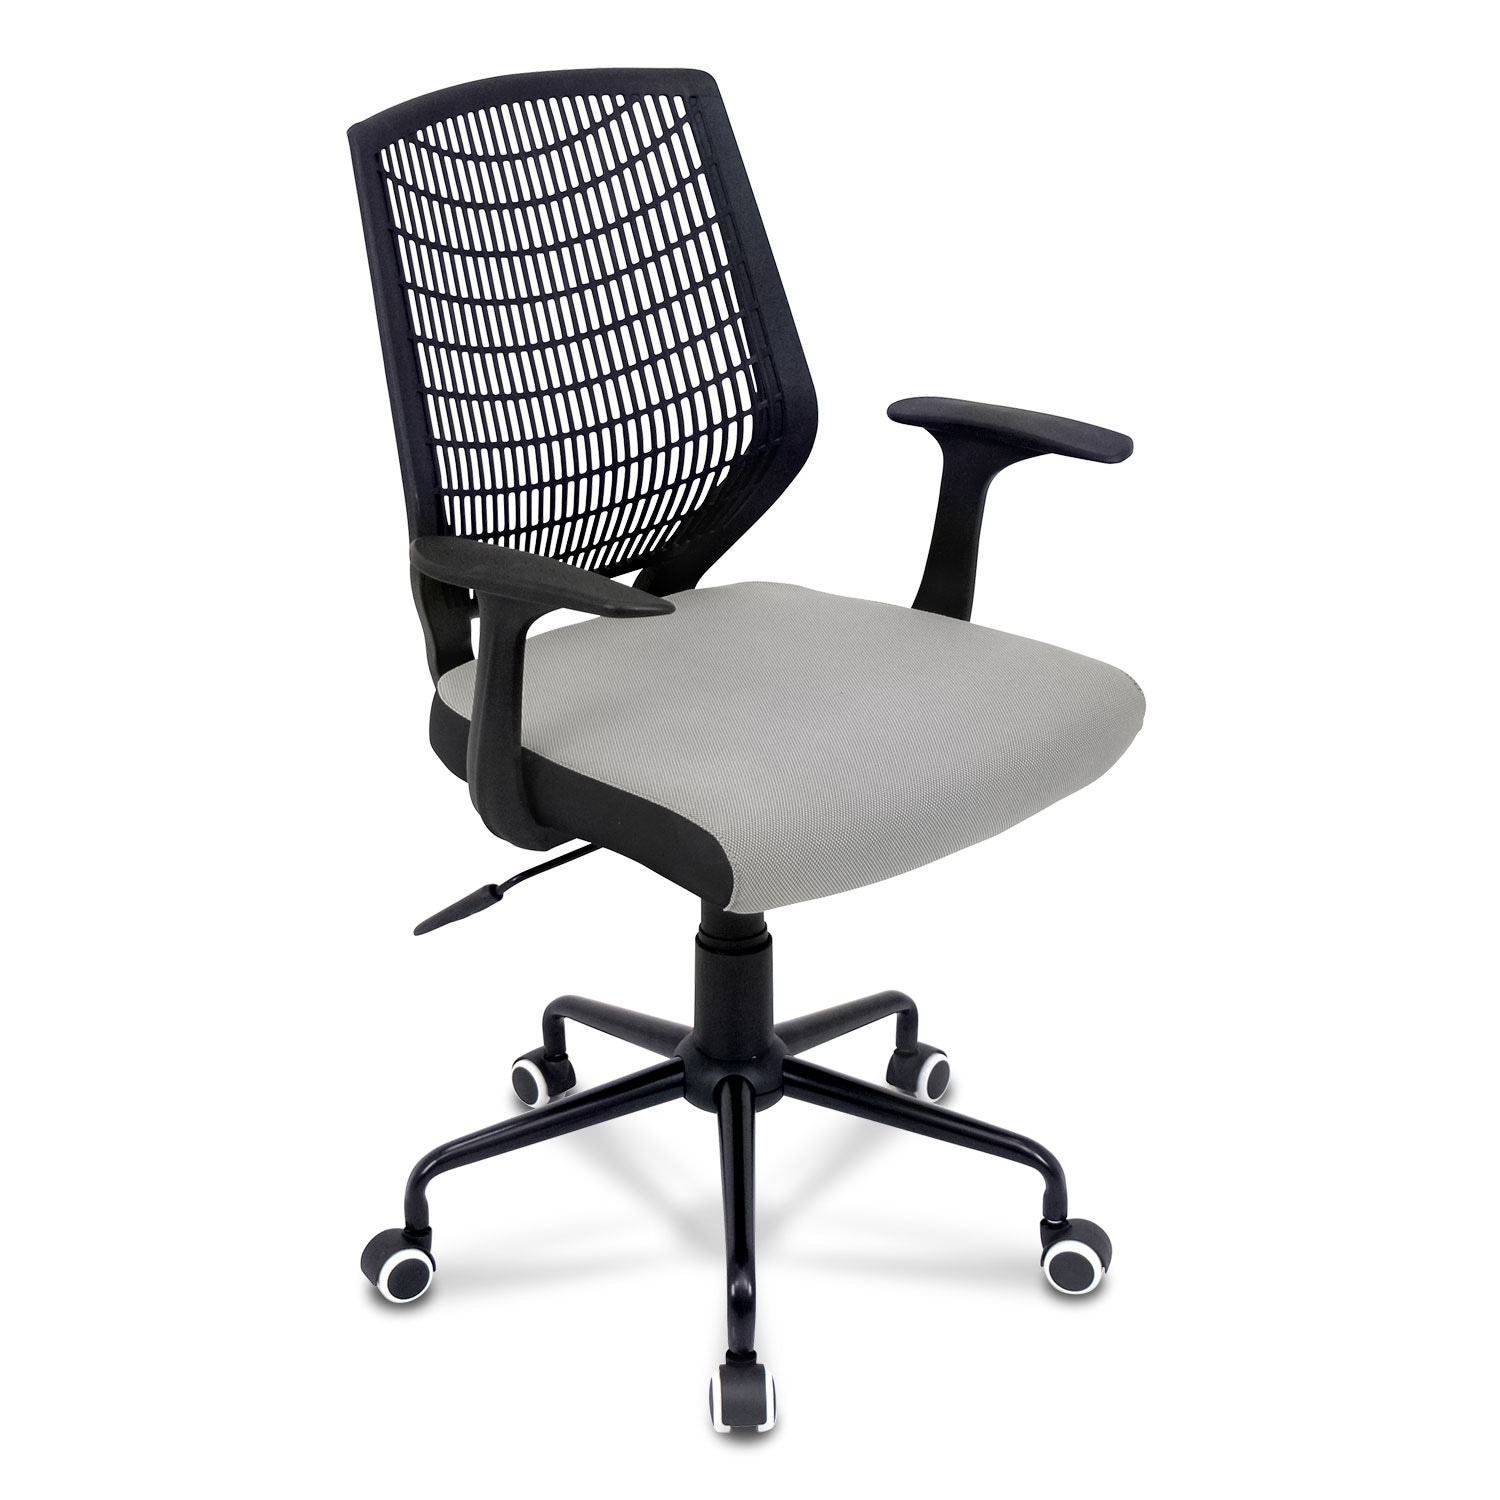 Home Office Furniture - Helix Office Chair - Black